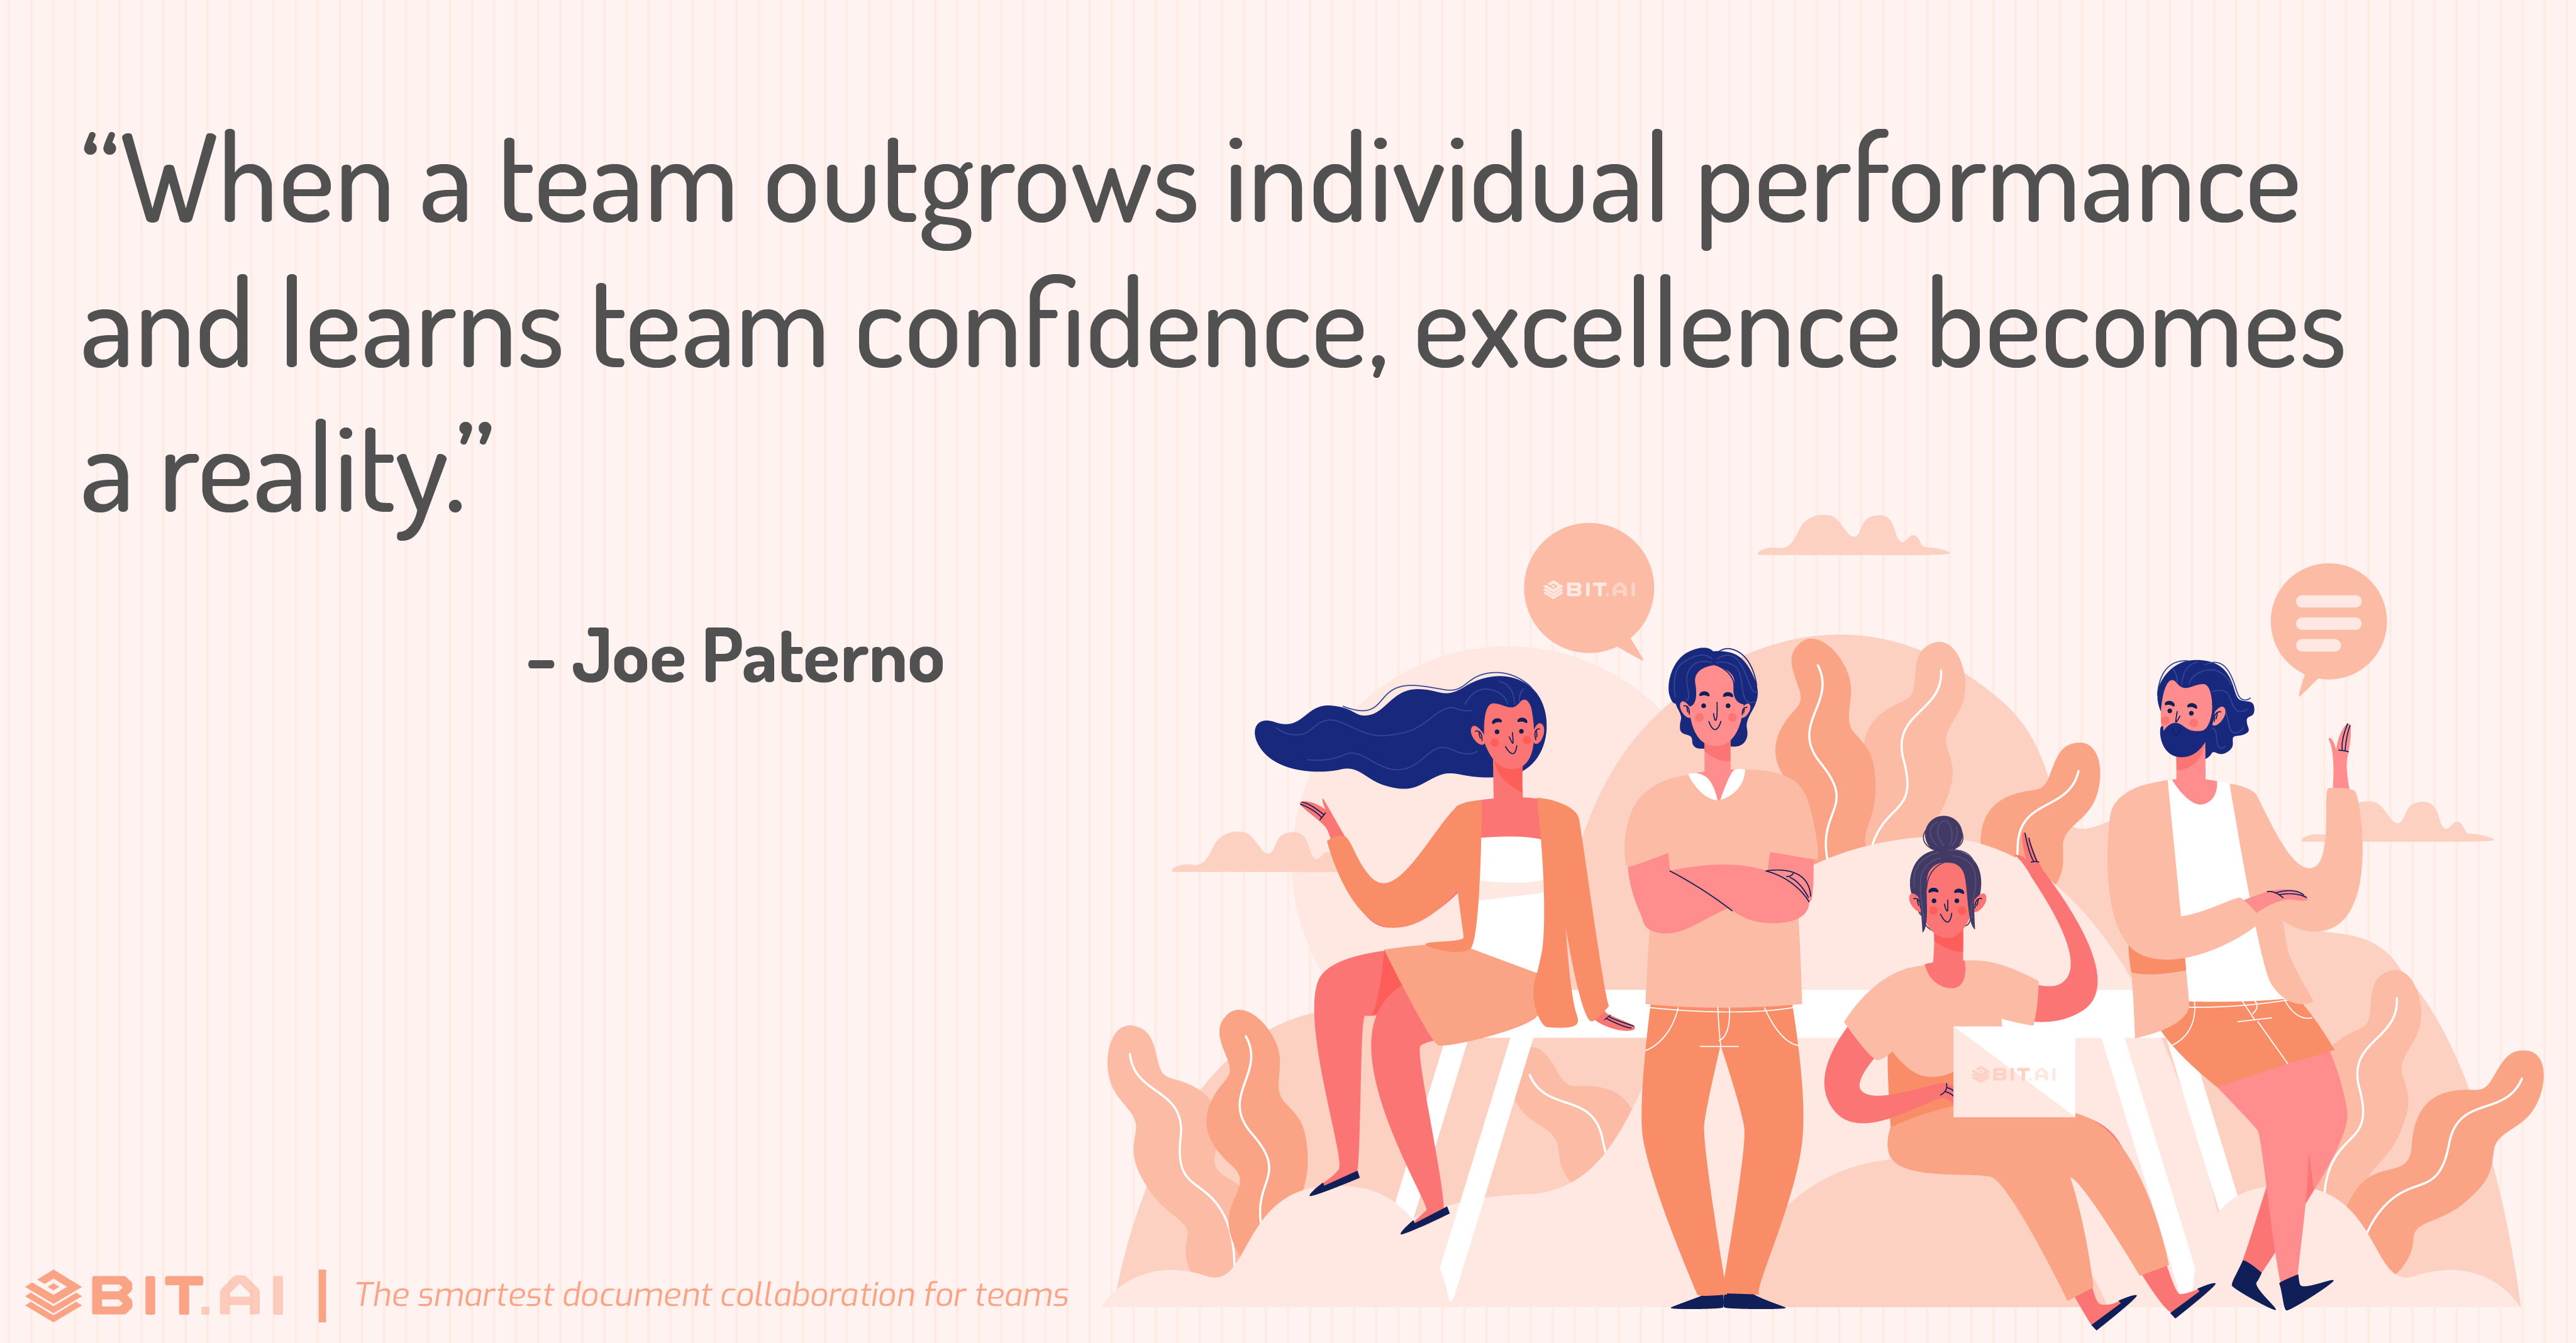 """When a team outgrows individual performance and learns team confidence, excellence becomes a reality."" - Joe Paterno"